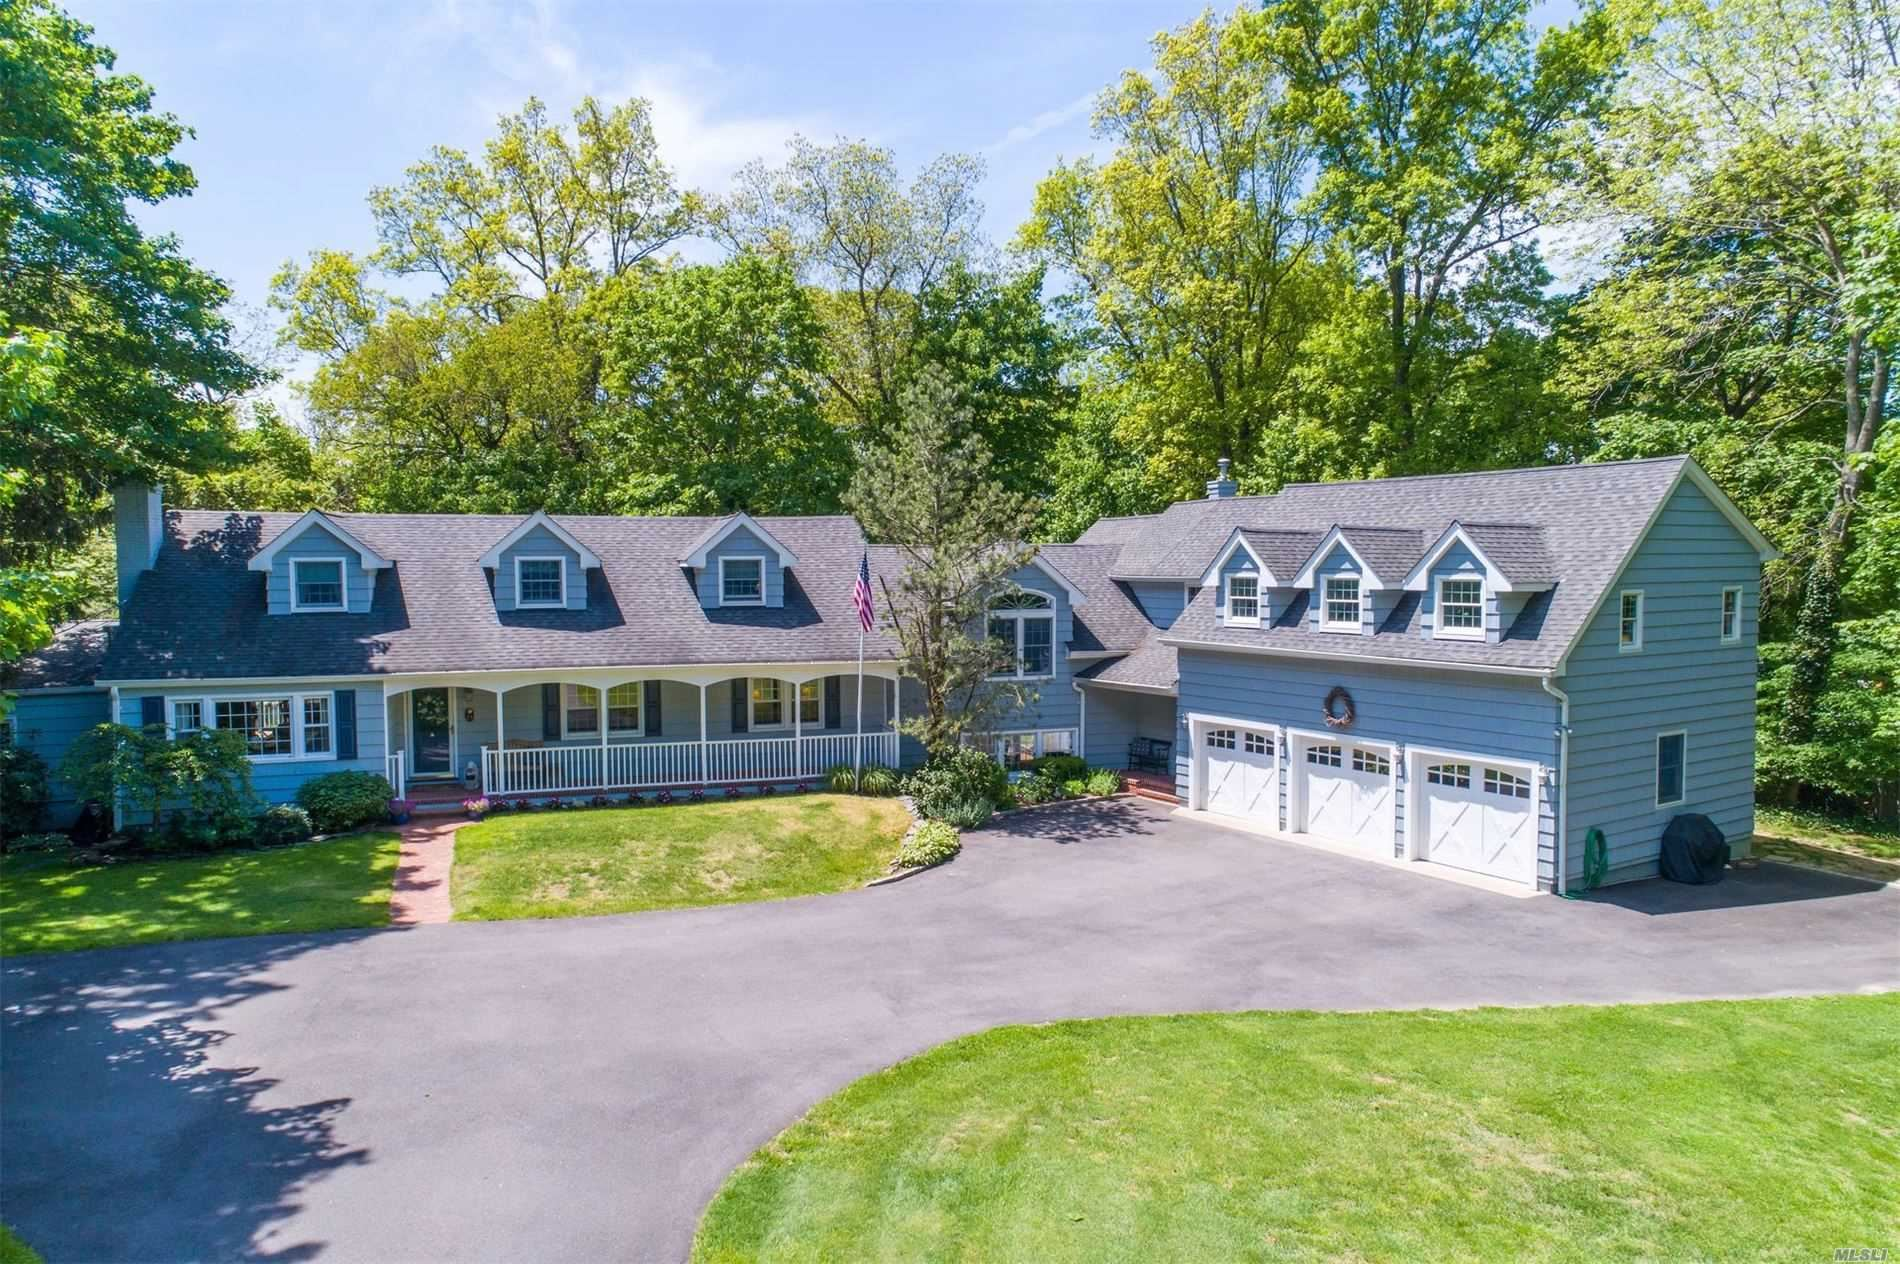 73 Huntington Bay Road, Huntington, NY 11743 - MLS#: 3217423